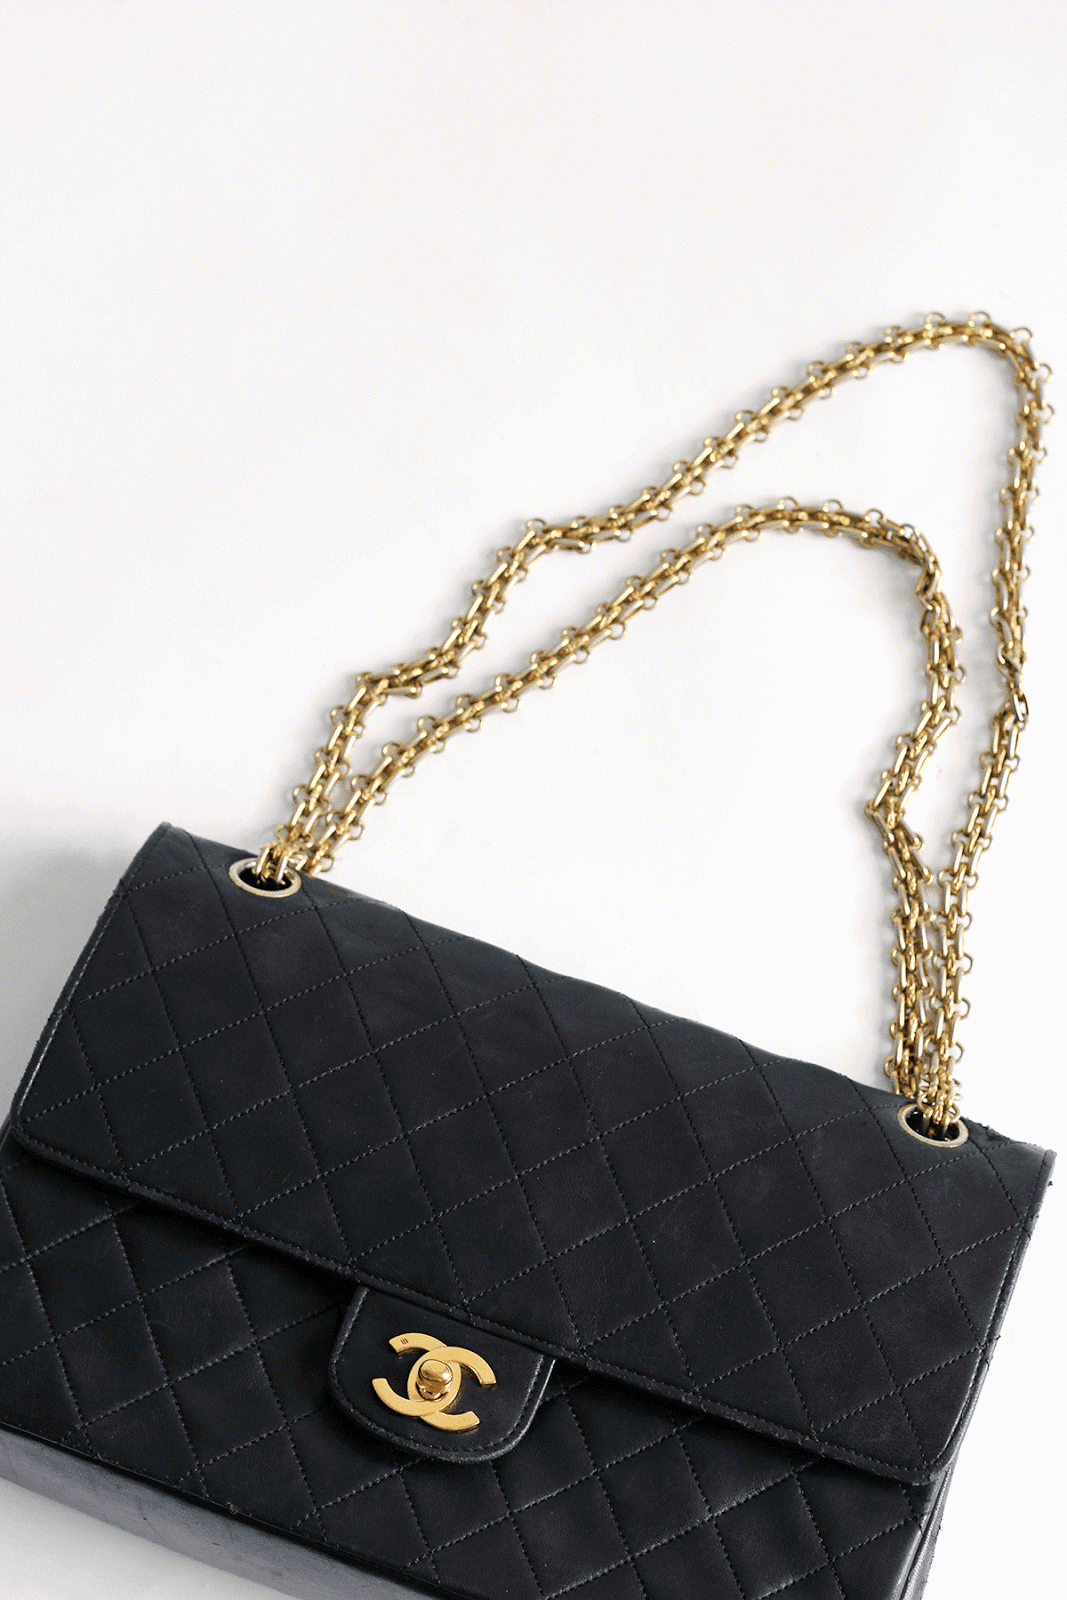 vintage chanel bag black lambskin chain